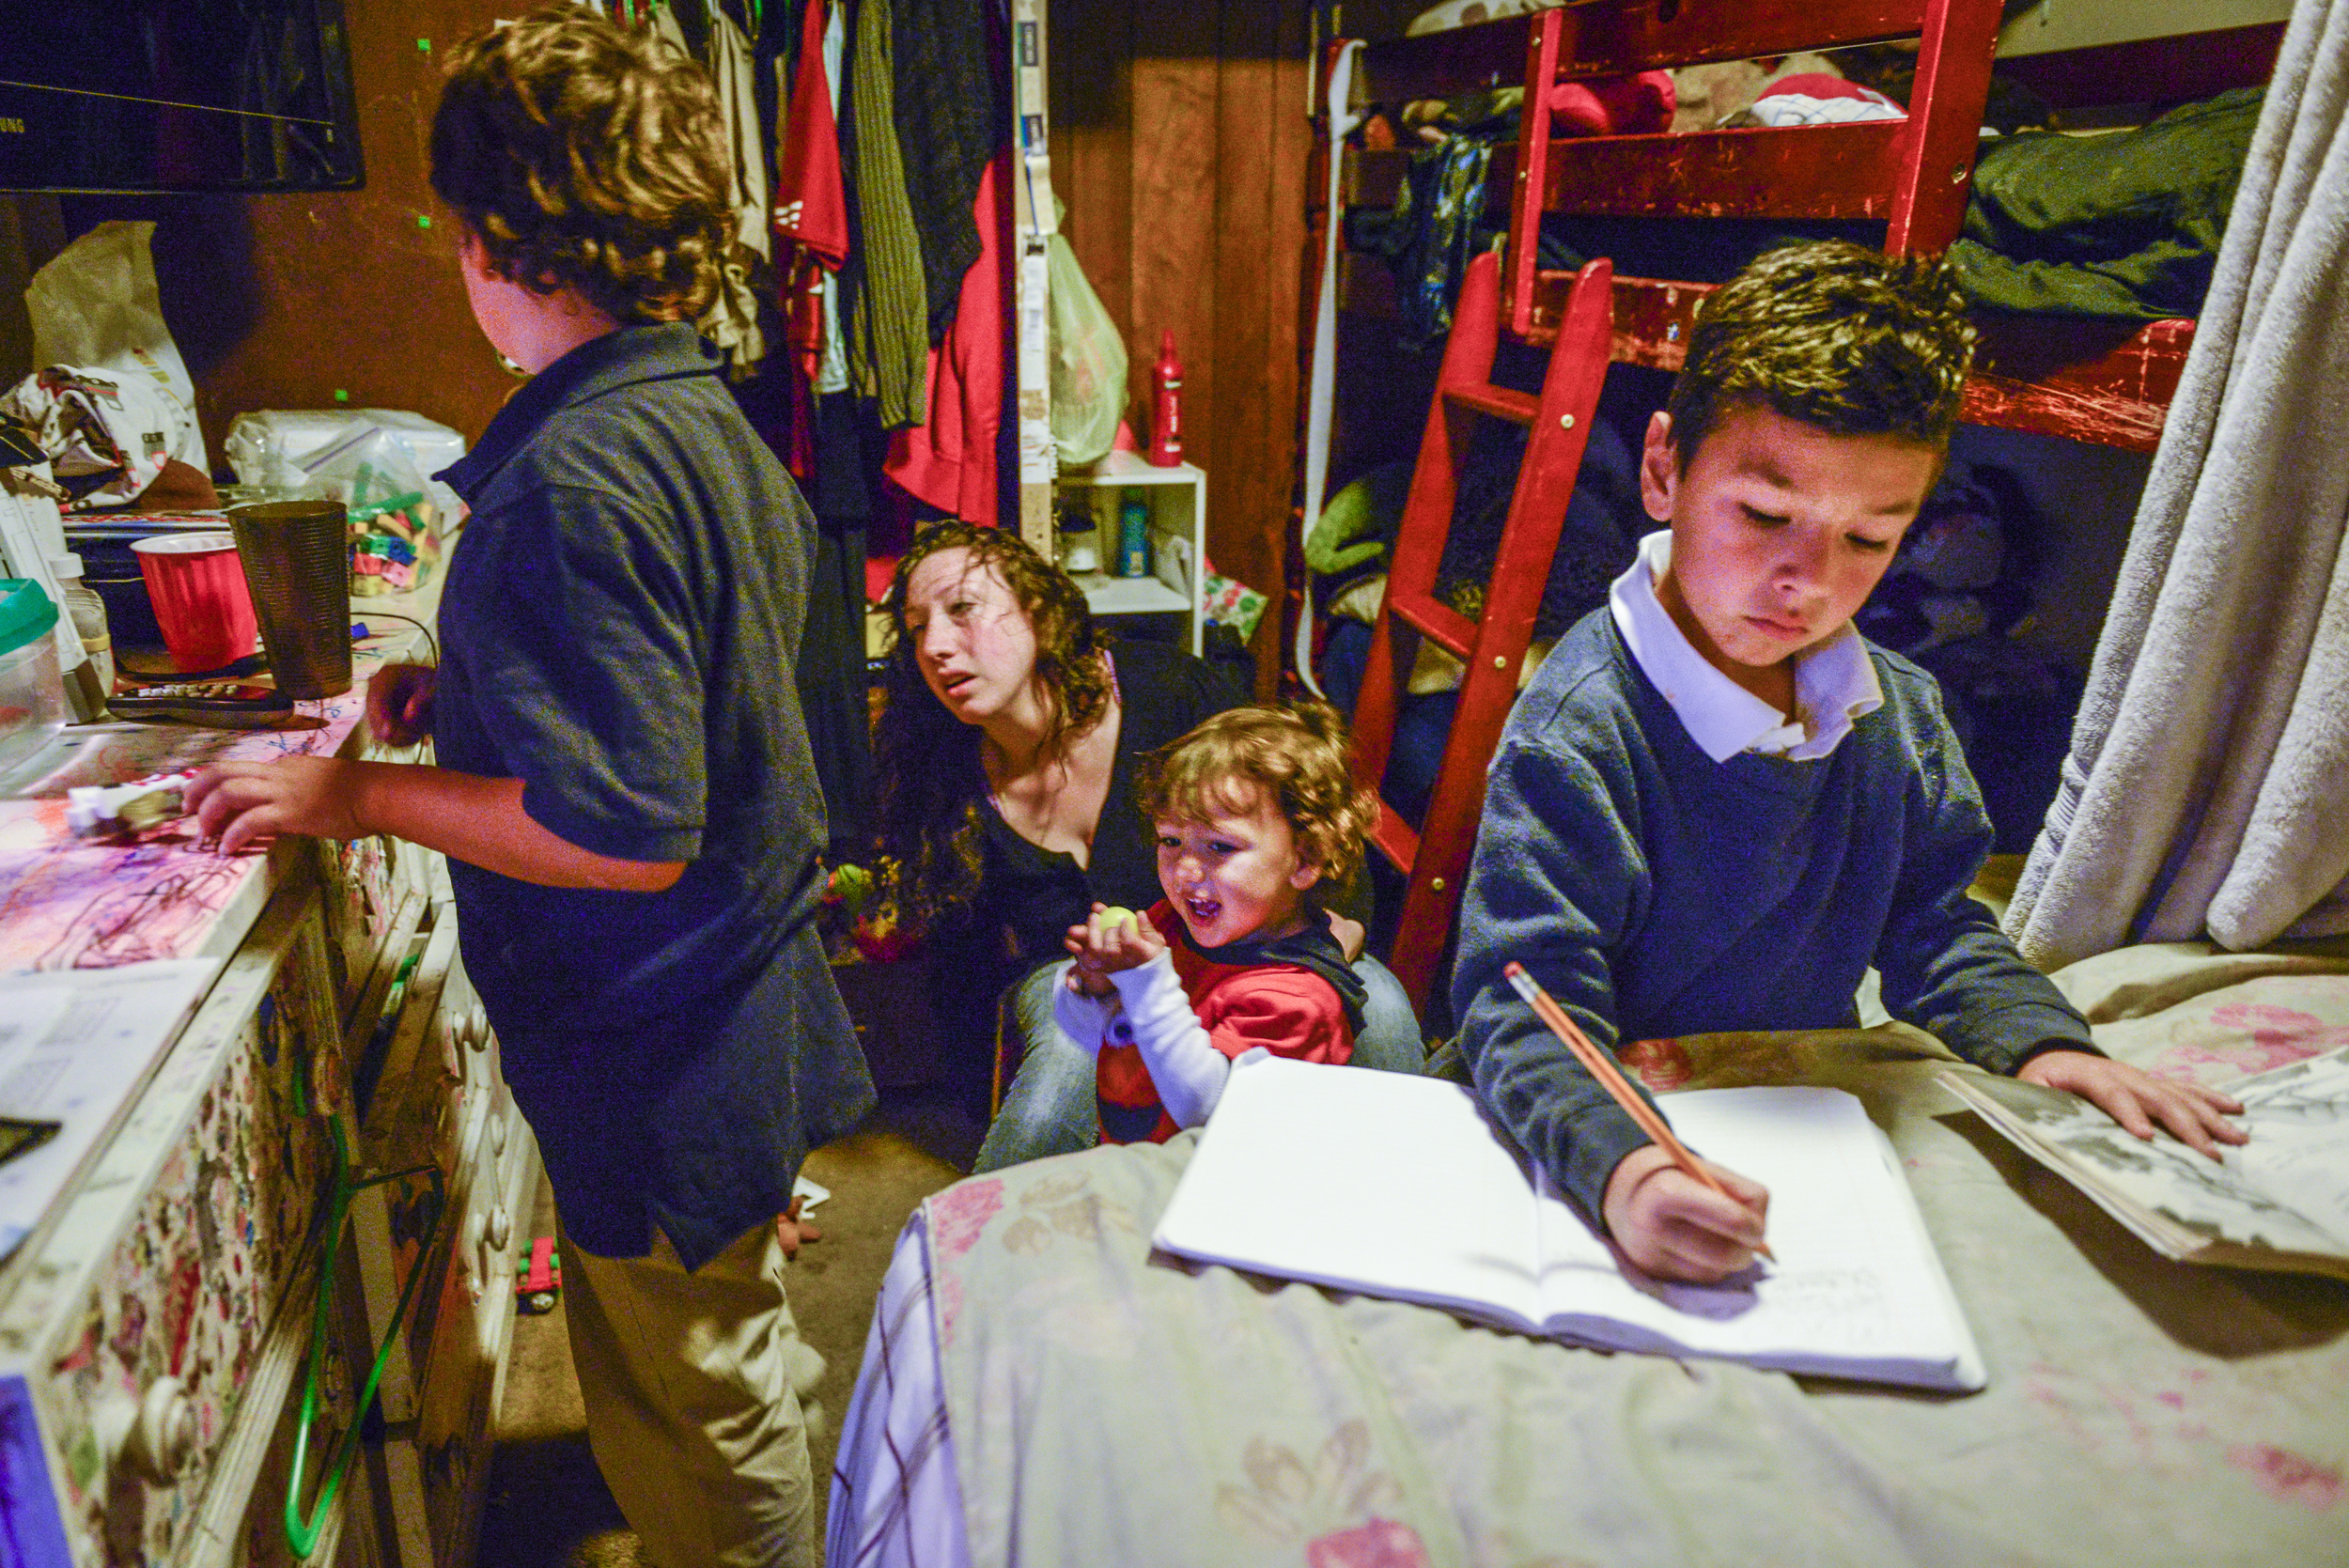 Mateo, 7, finishes his homework while Amanda helps Dominic and Christopher get ready to go to school. The studio they live in is so small there is no room for a table. The kids do their homework on their bed.